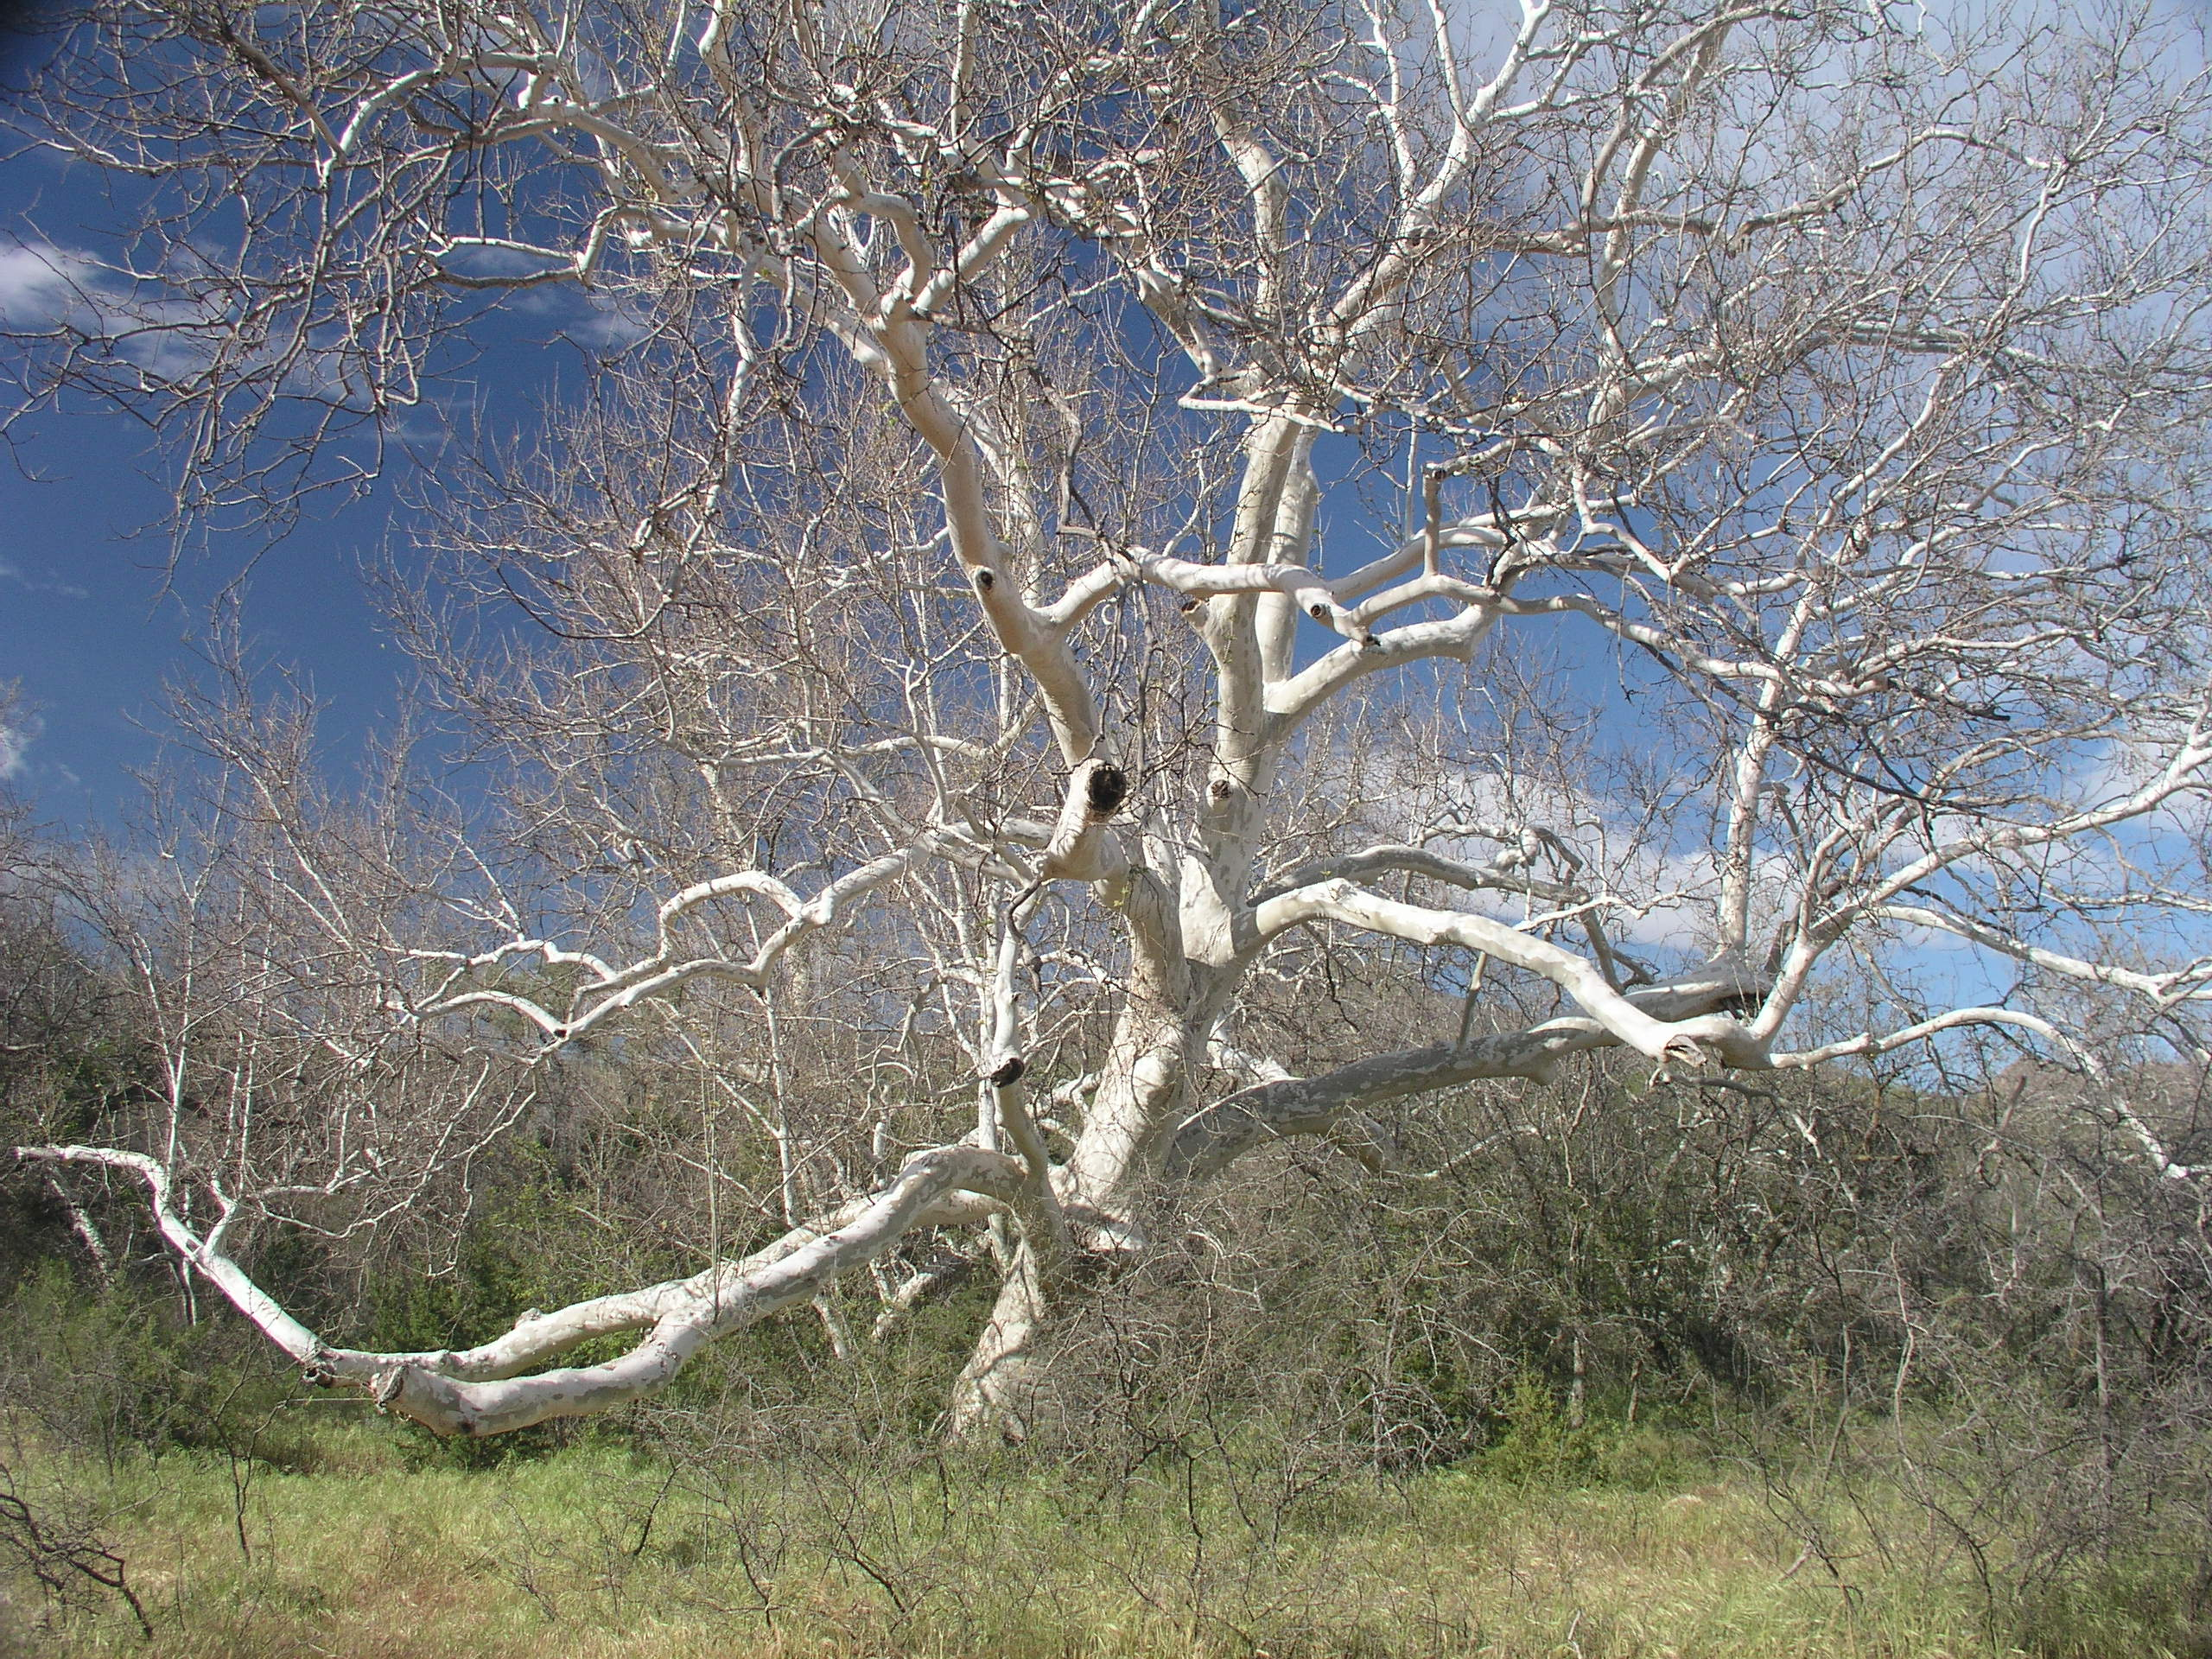 The Crazy Sycamore Tree off the Arizona Trail - Cynthia Sidrane